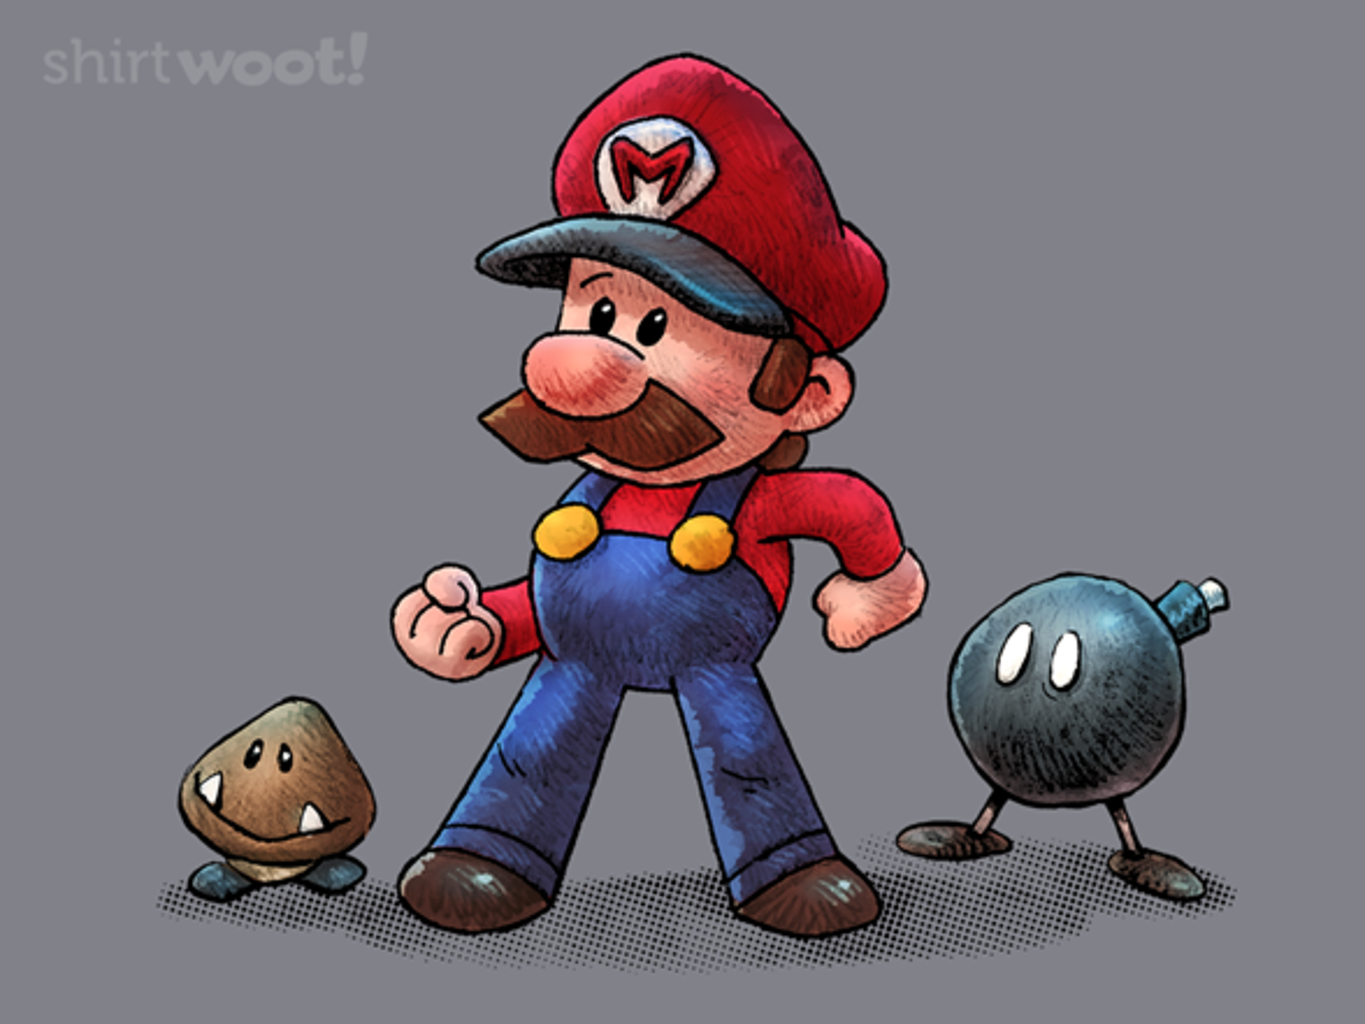 Woot!: Mighty Plumber